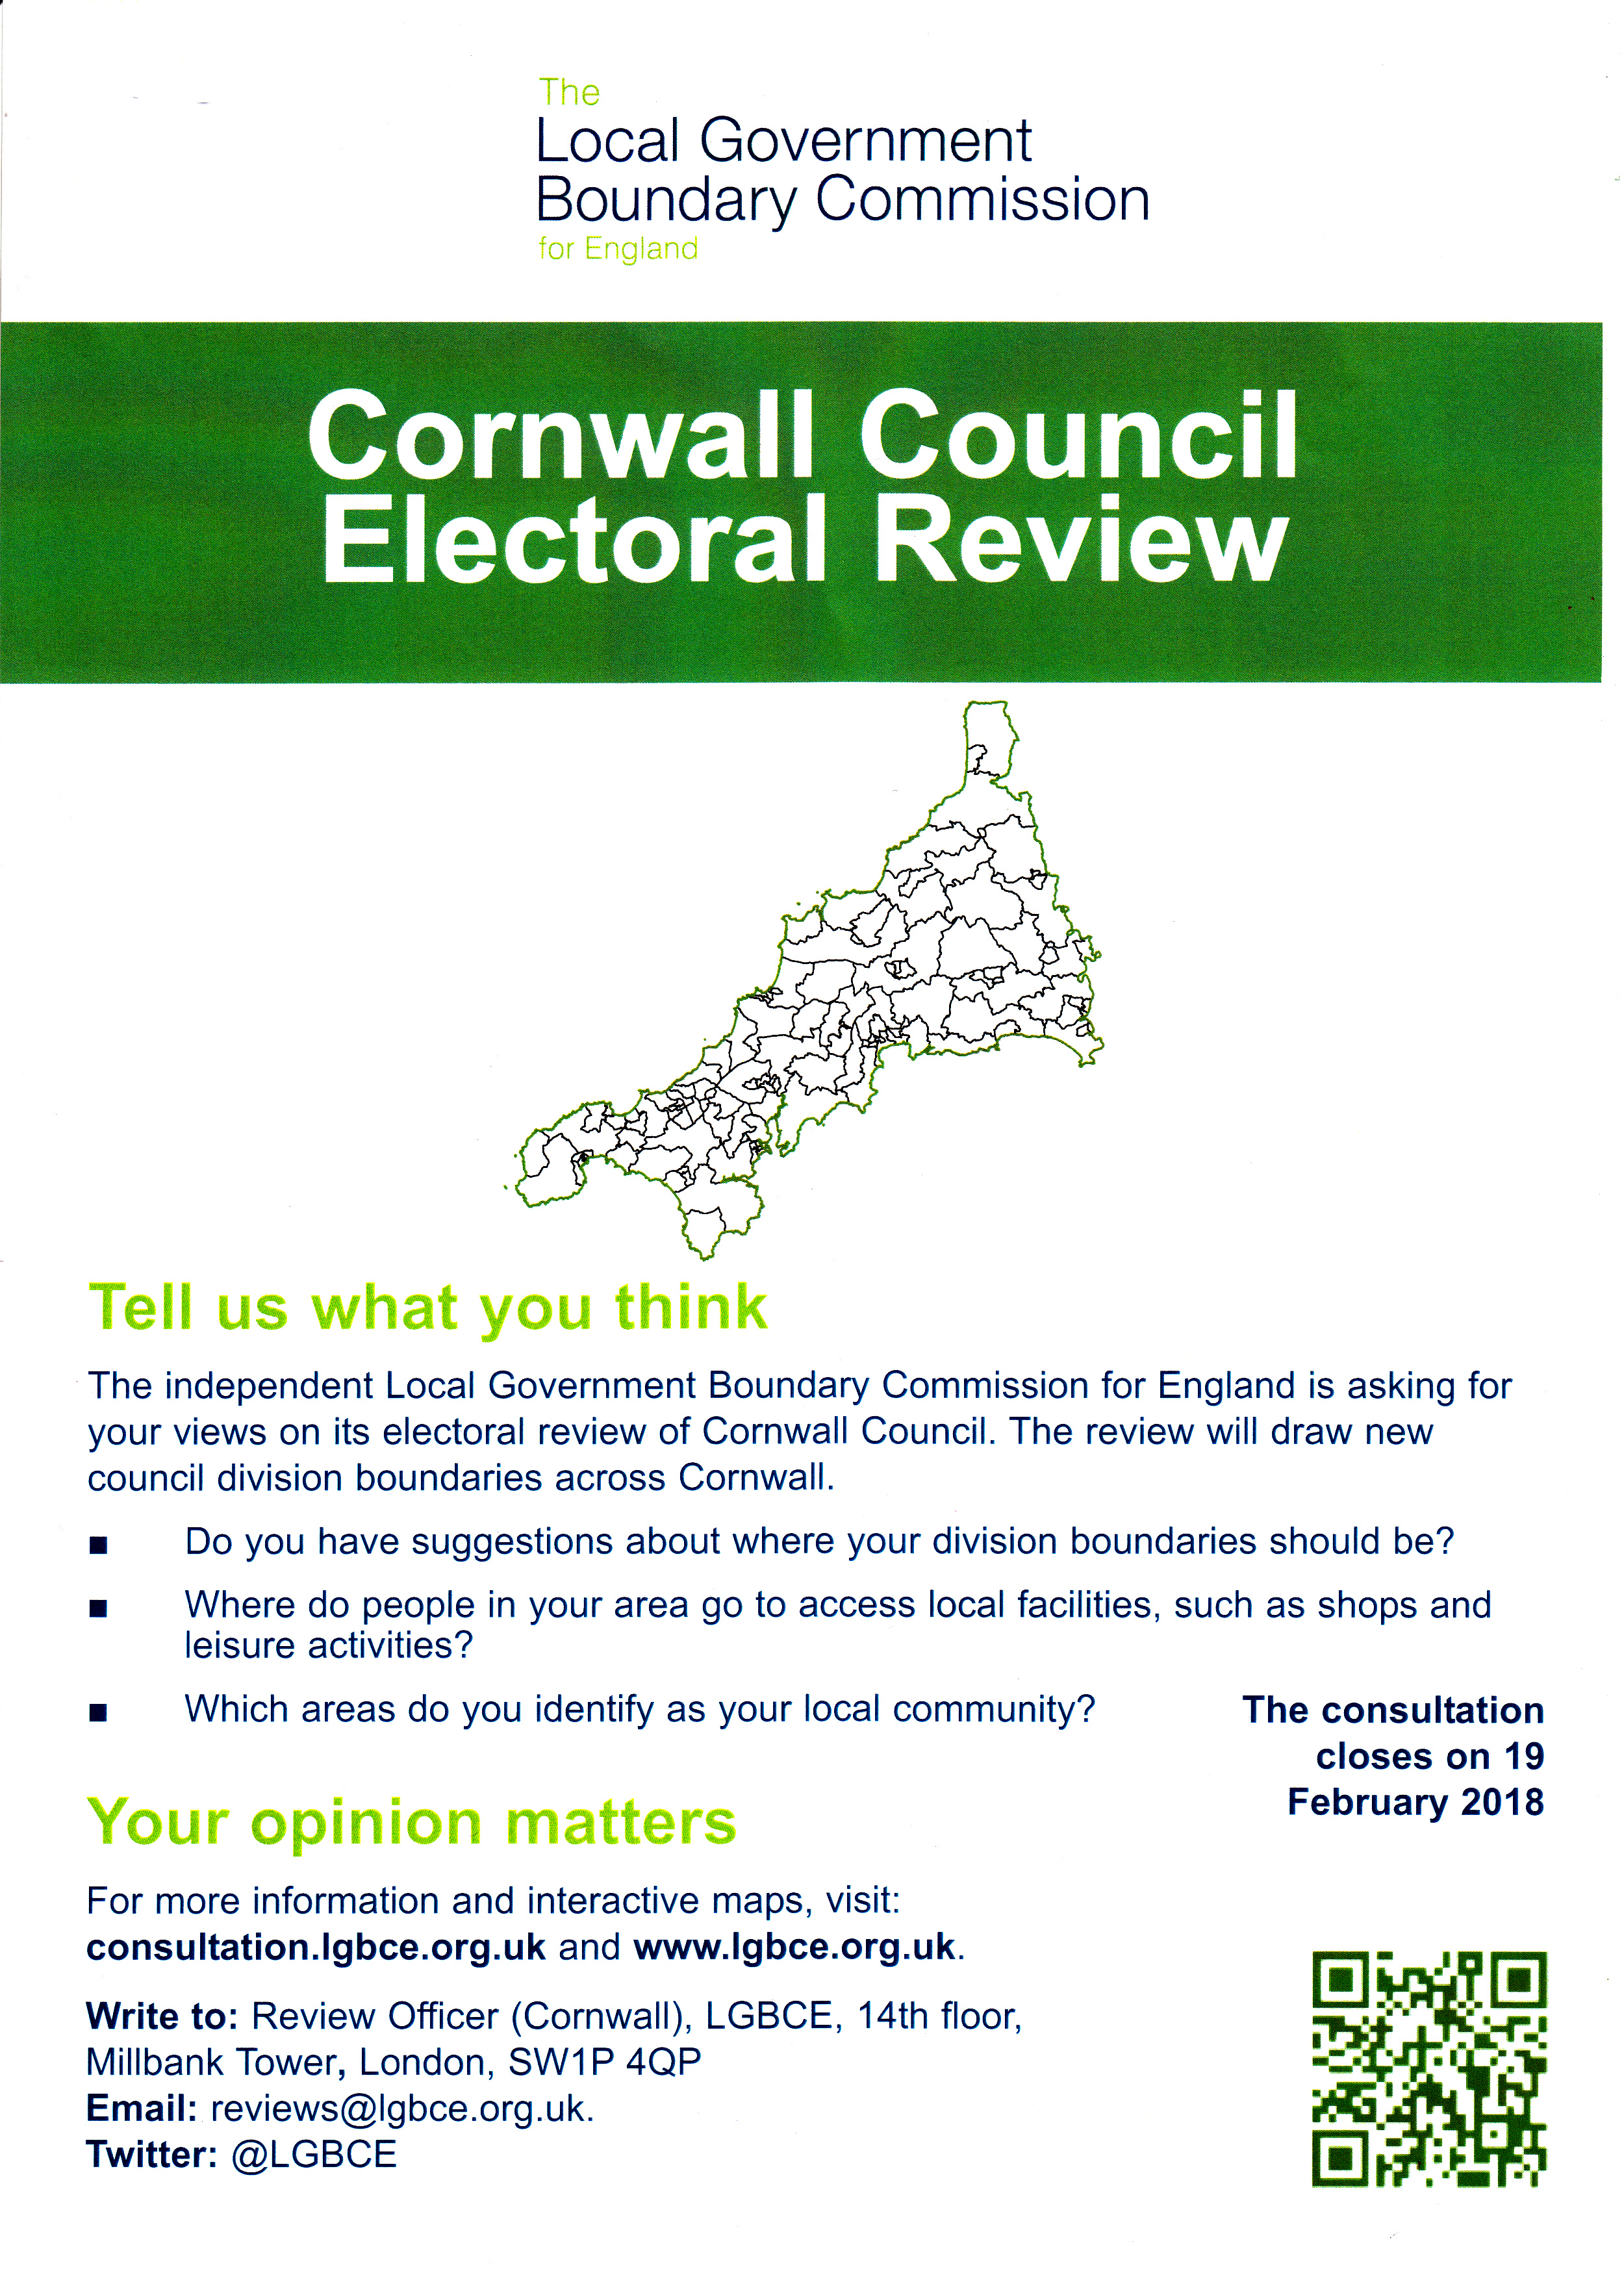 CC Electoral Review